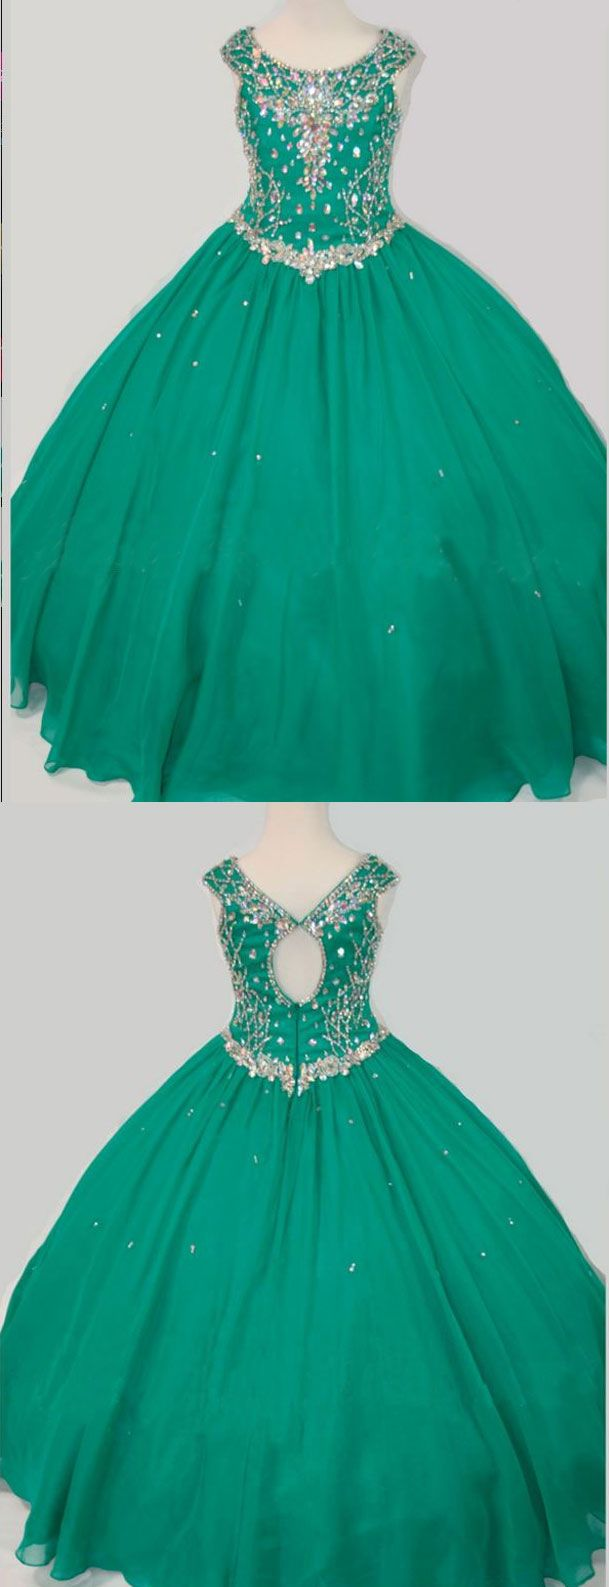 sparkly ball gowns pageant dresses, hunter green pageant dresses, dresses for junior, 2017 pageant dresses